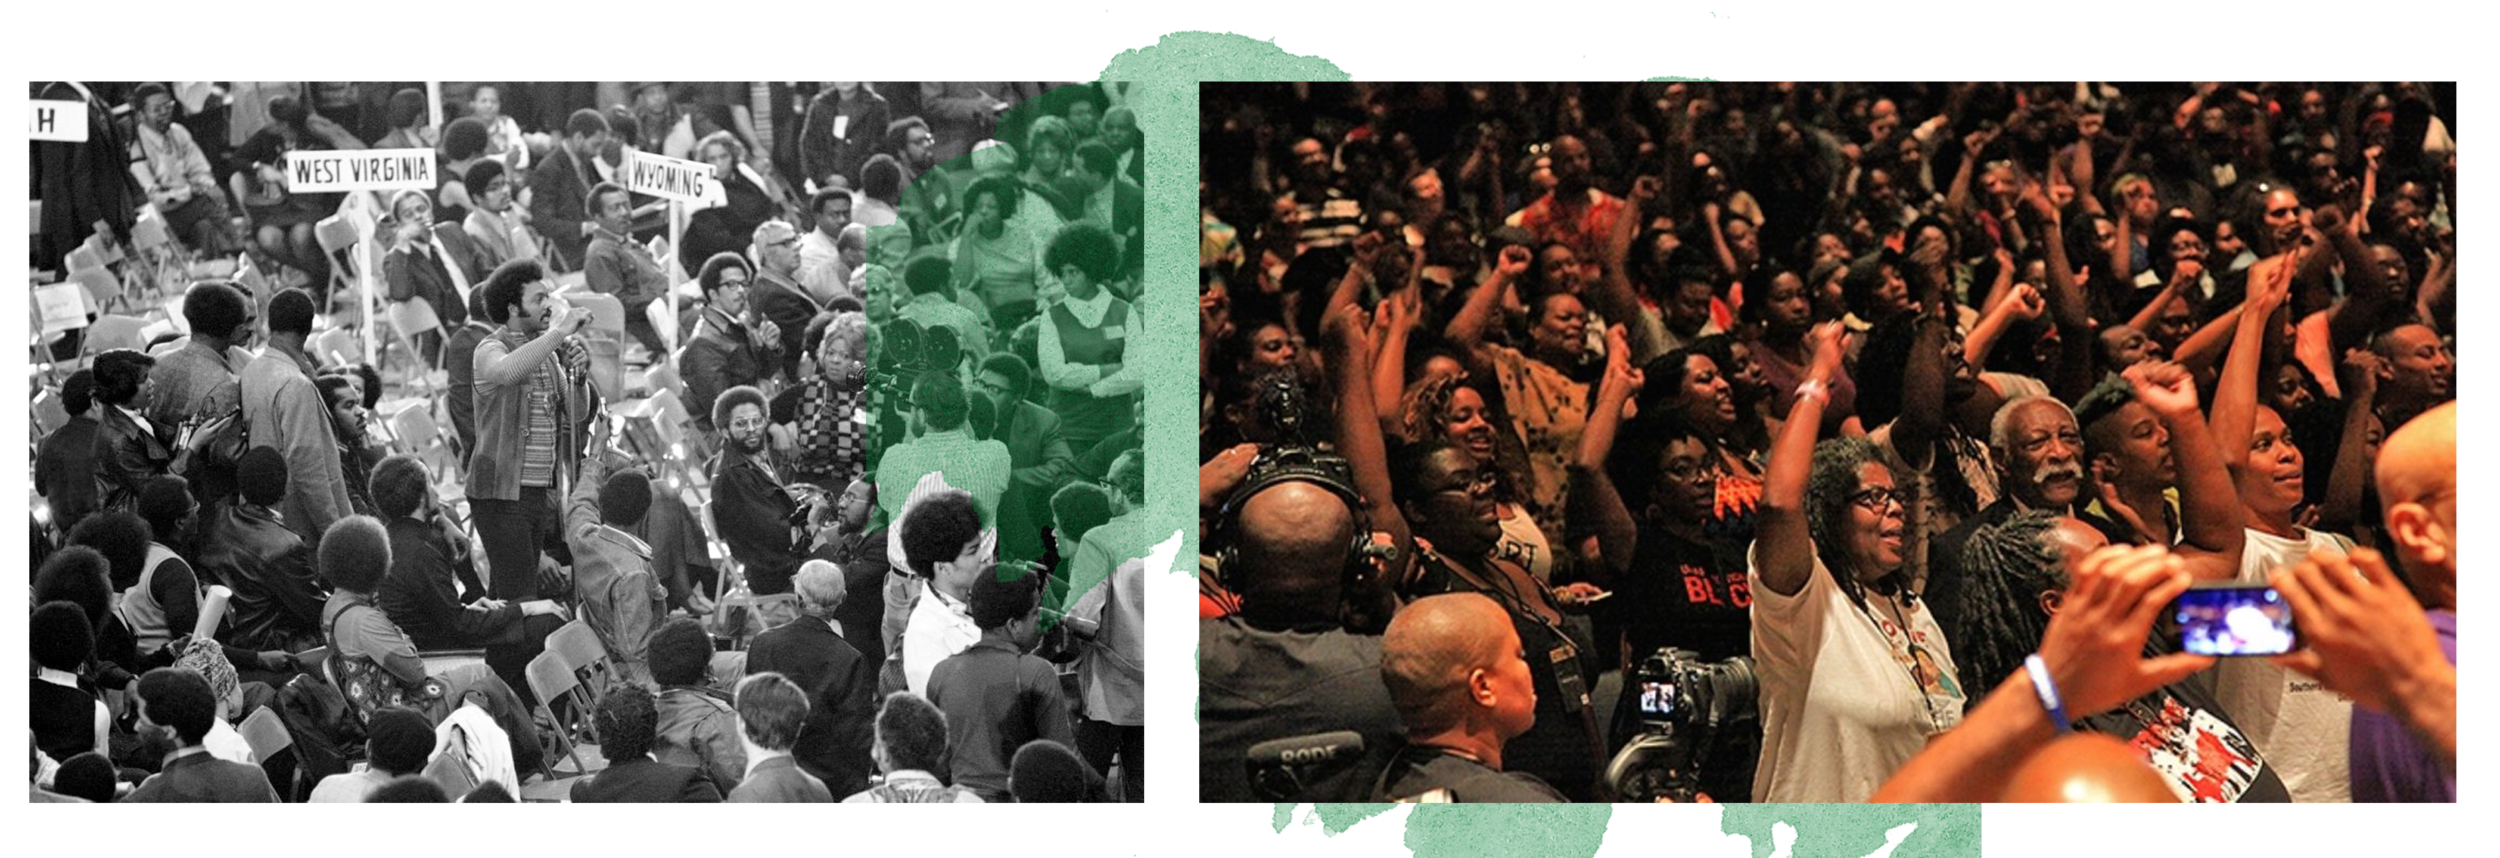 1972 National Black Political Convention (Gary, IN) & 2015 Movement for Black Lives Convening (Cleveland, OH)